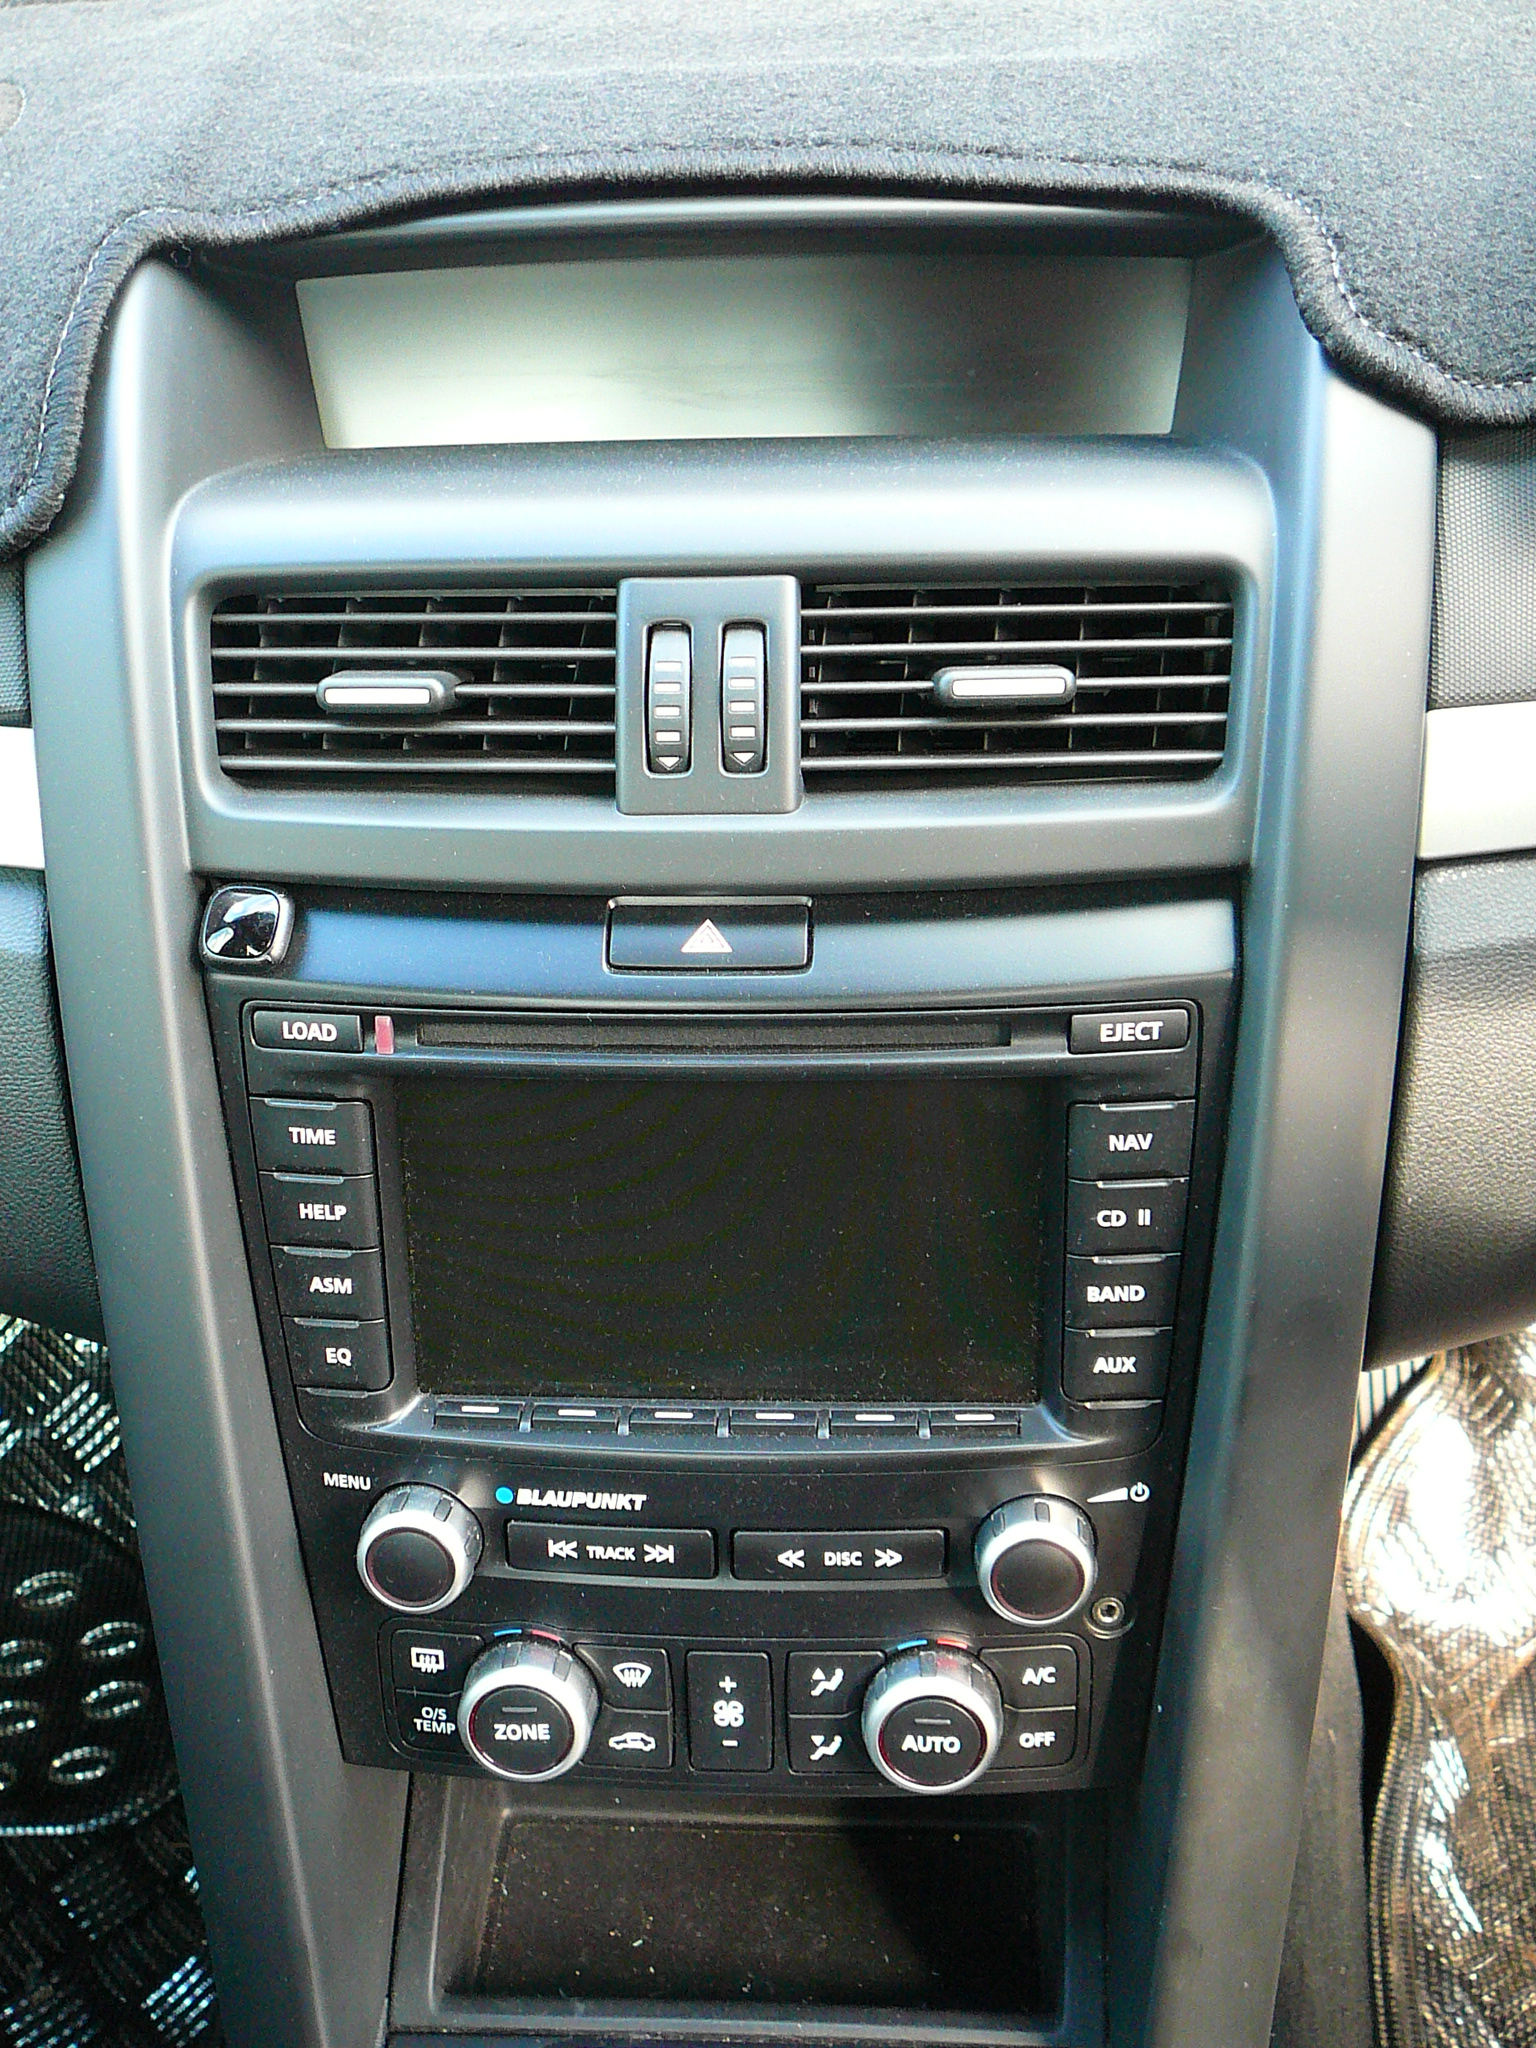 Holden VE Commodore with an aftermarket dash kit and an Alpine GPS Naviagtion unit